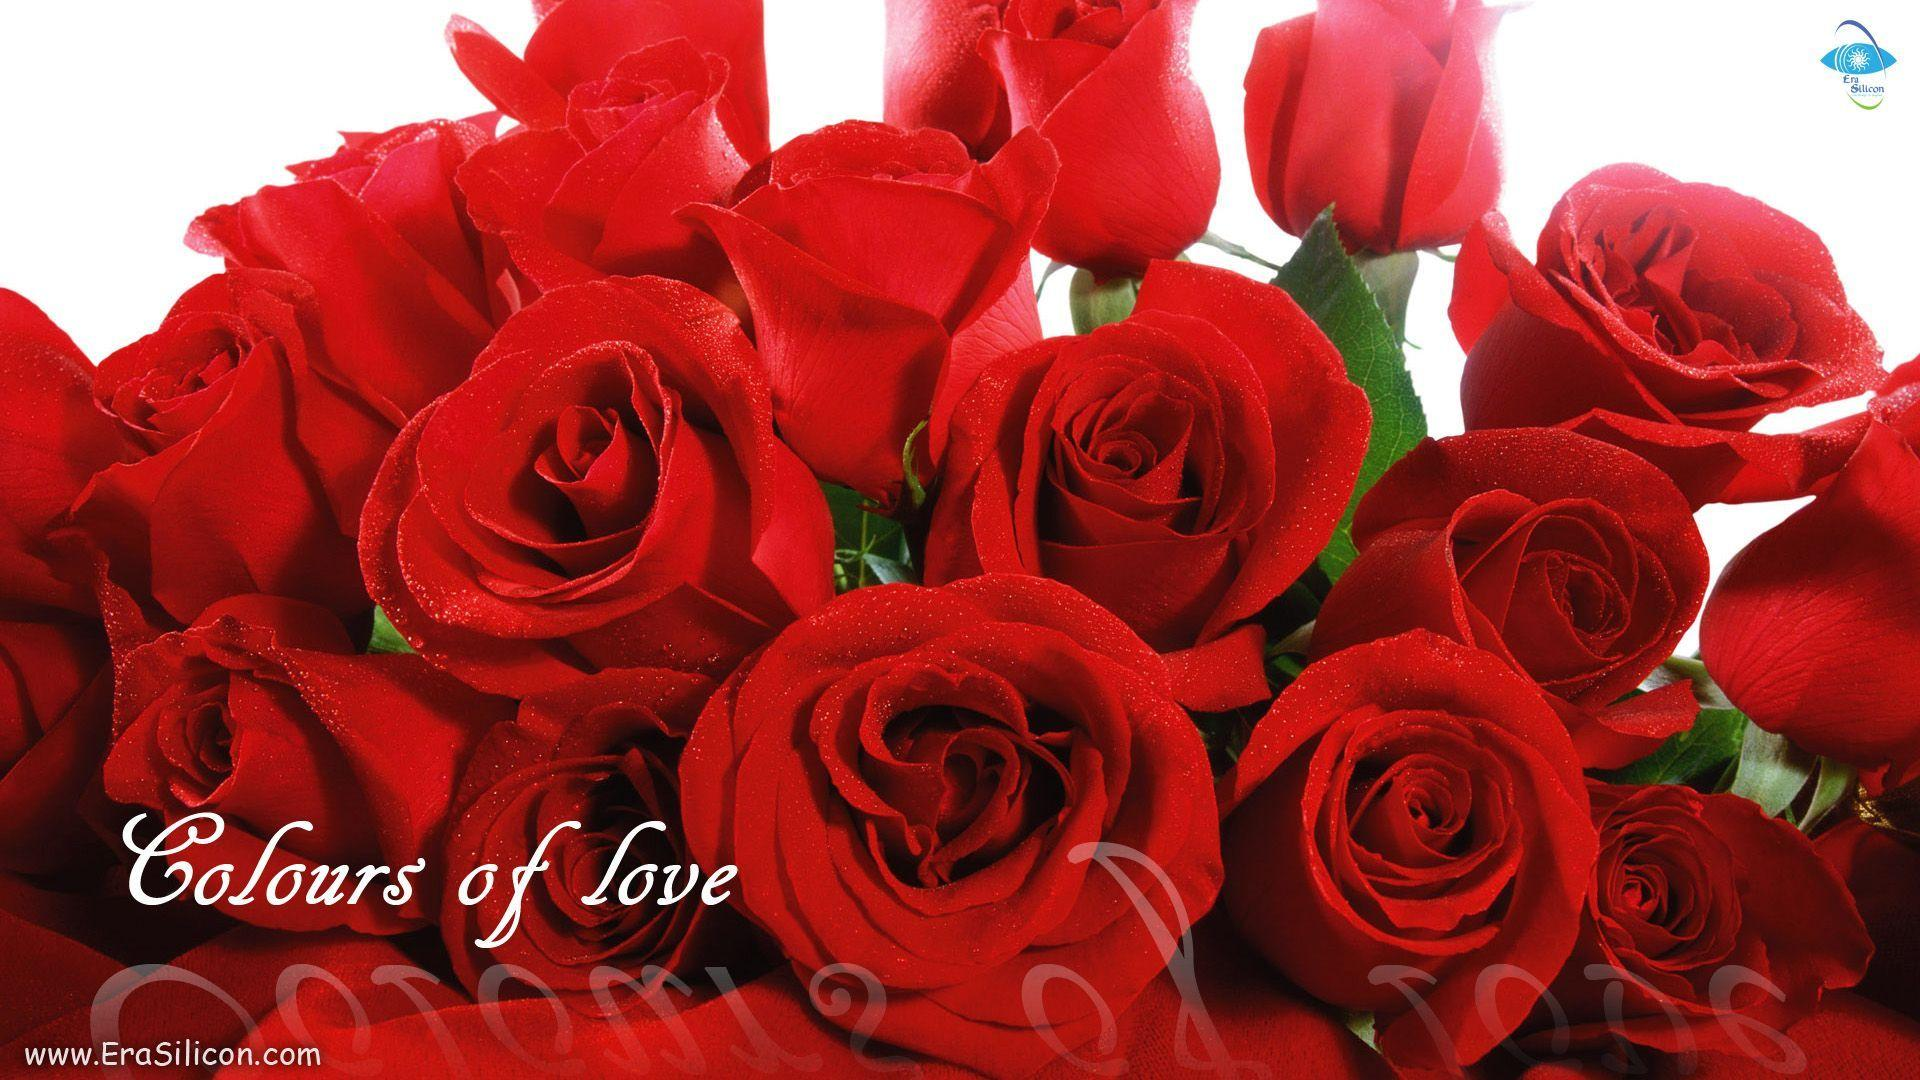 Love Flowers Wallpapers - Wallpaper cave